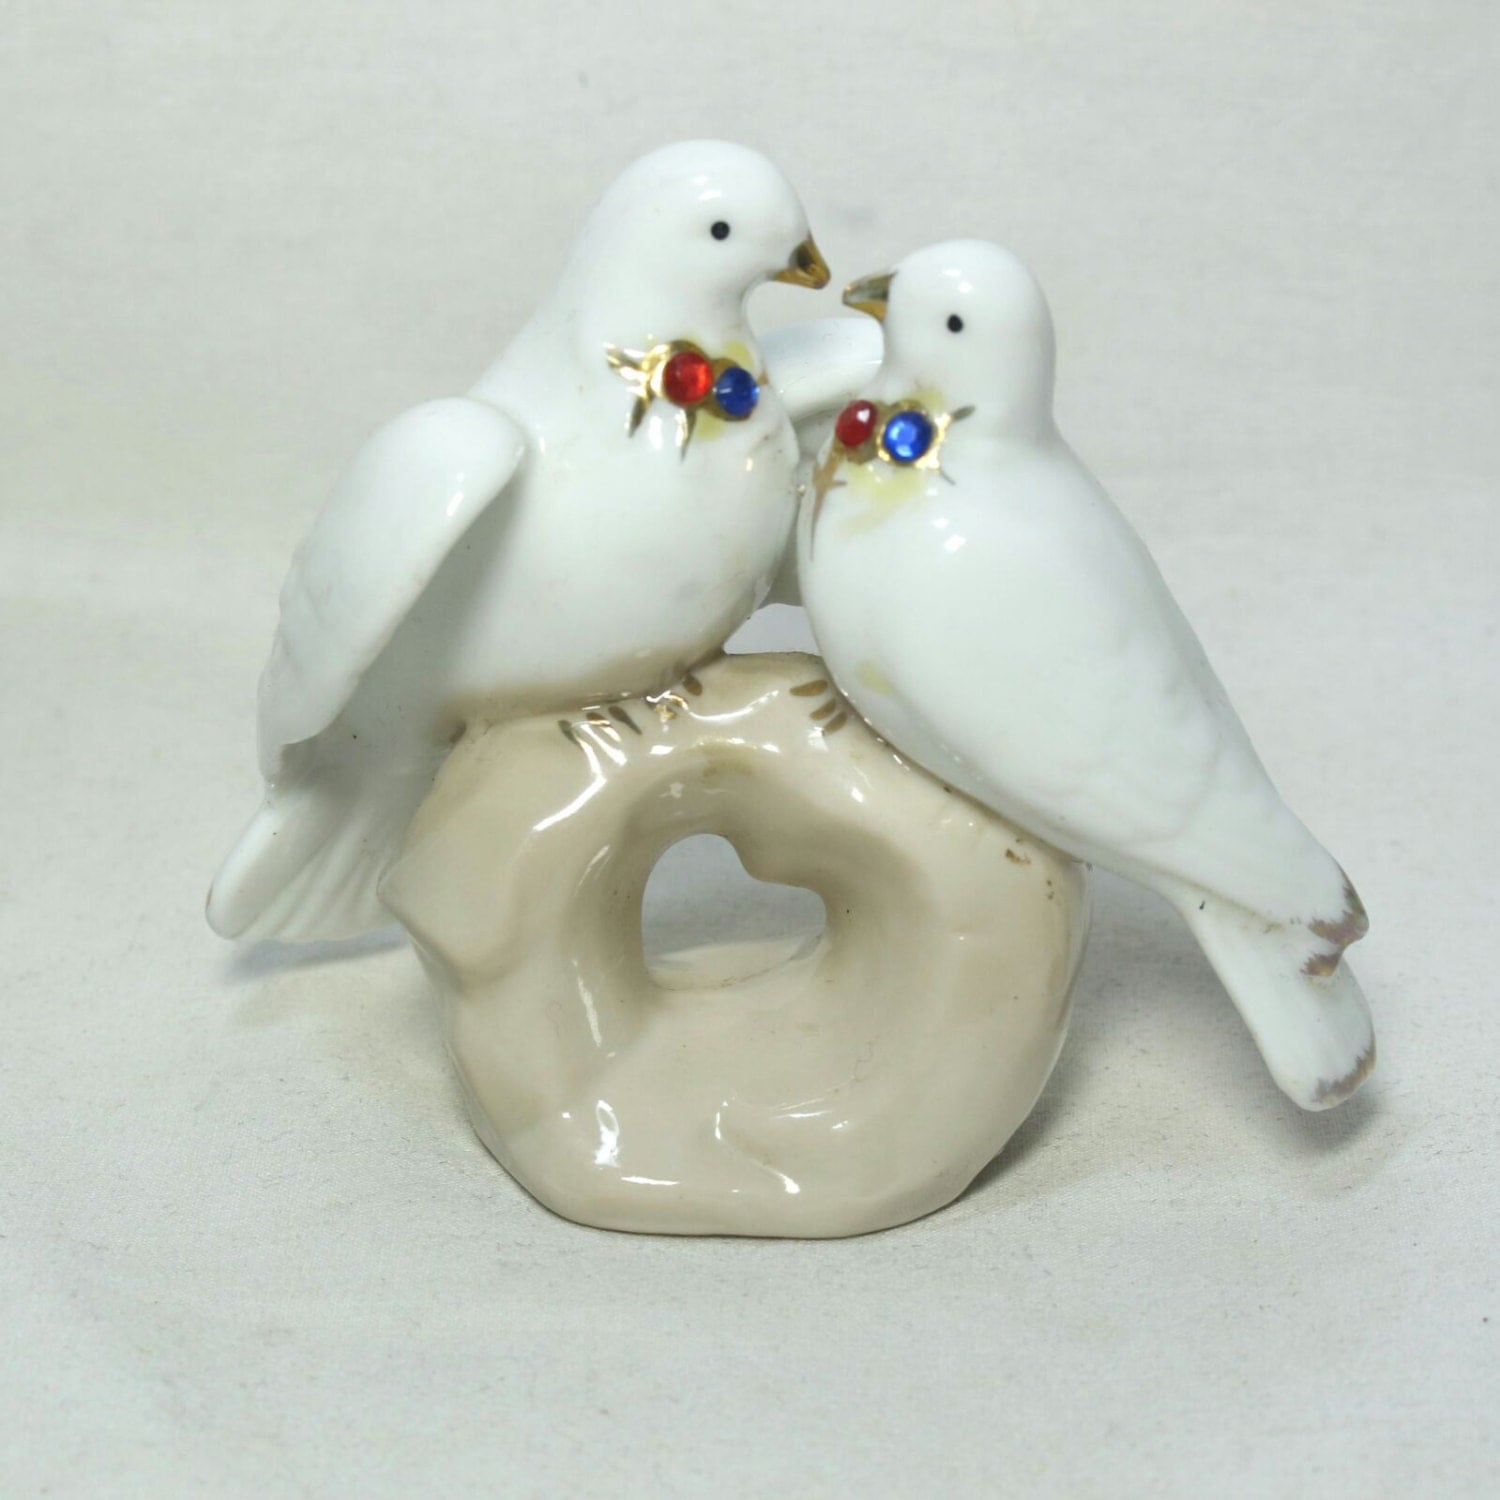 Vintage White Porcelain Bird Figurines Bookshelf Decor White